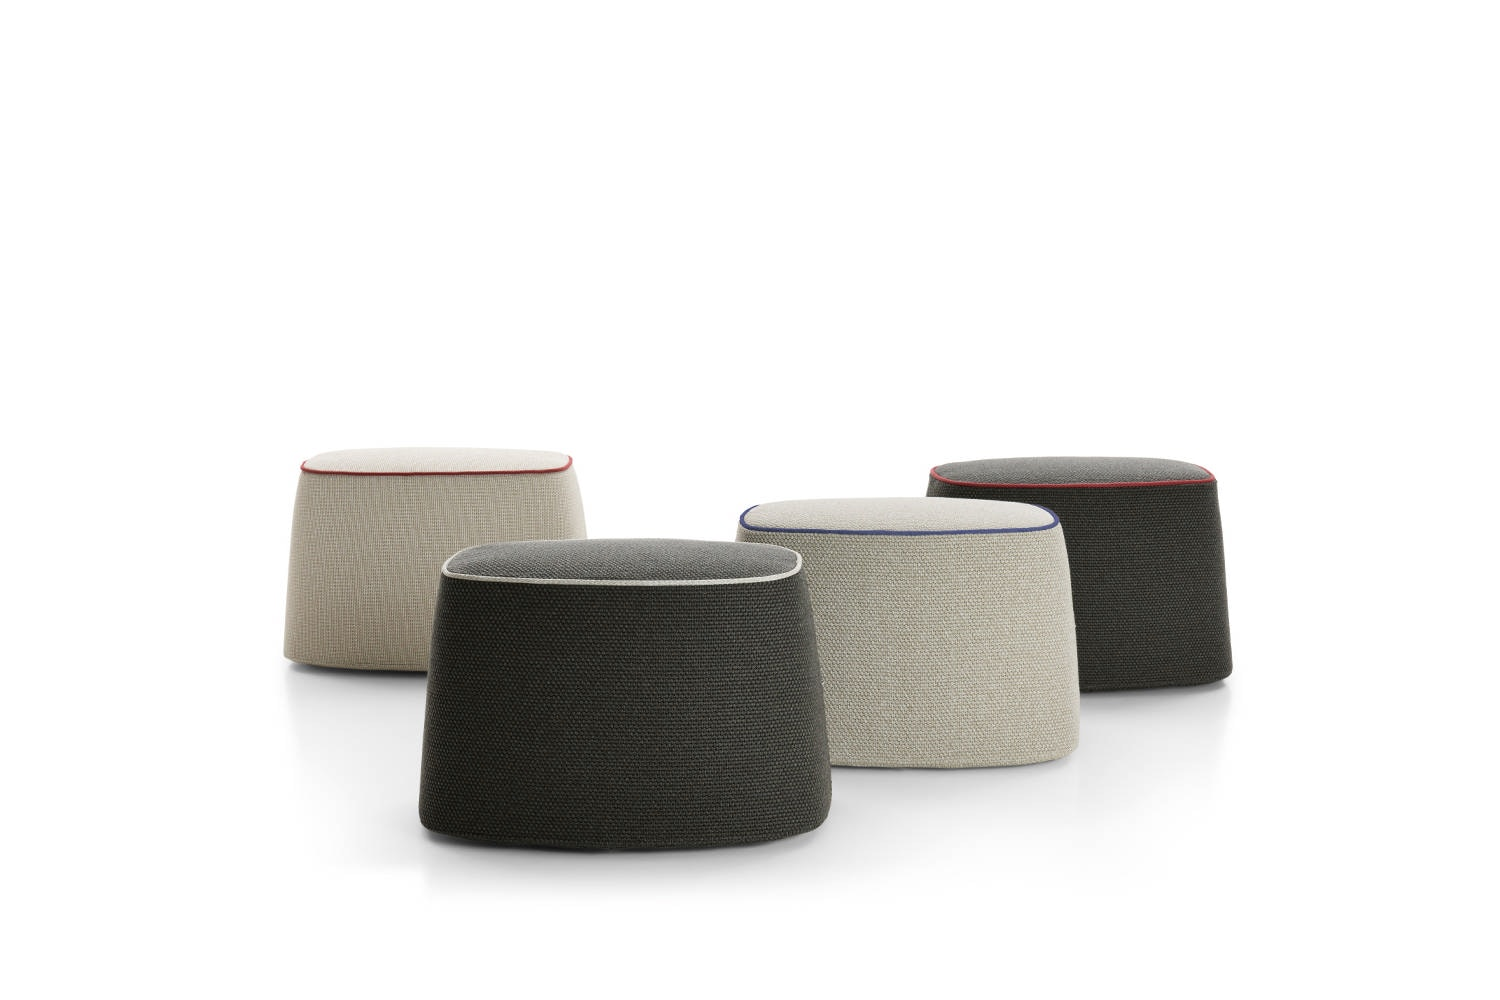 Frank Outdoor Ottoman by Antonio Citterio for B&B Italia